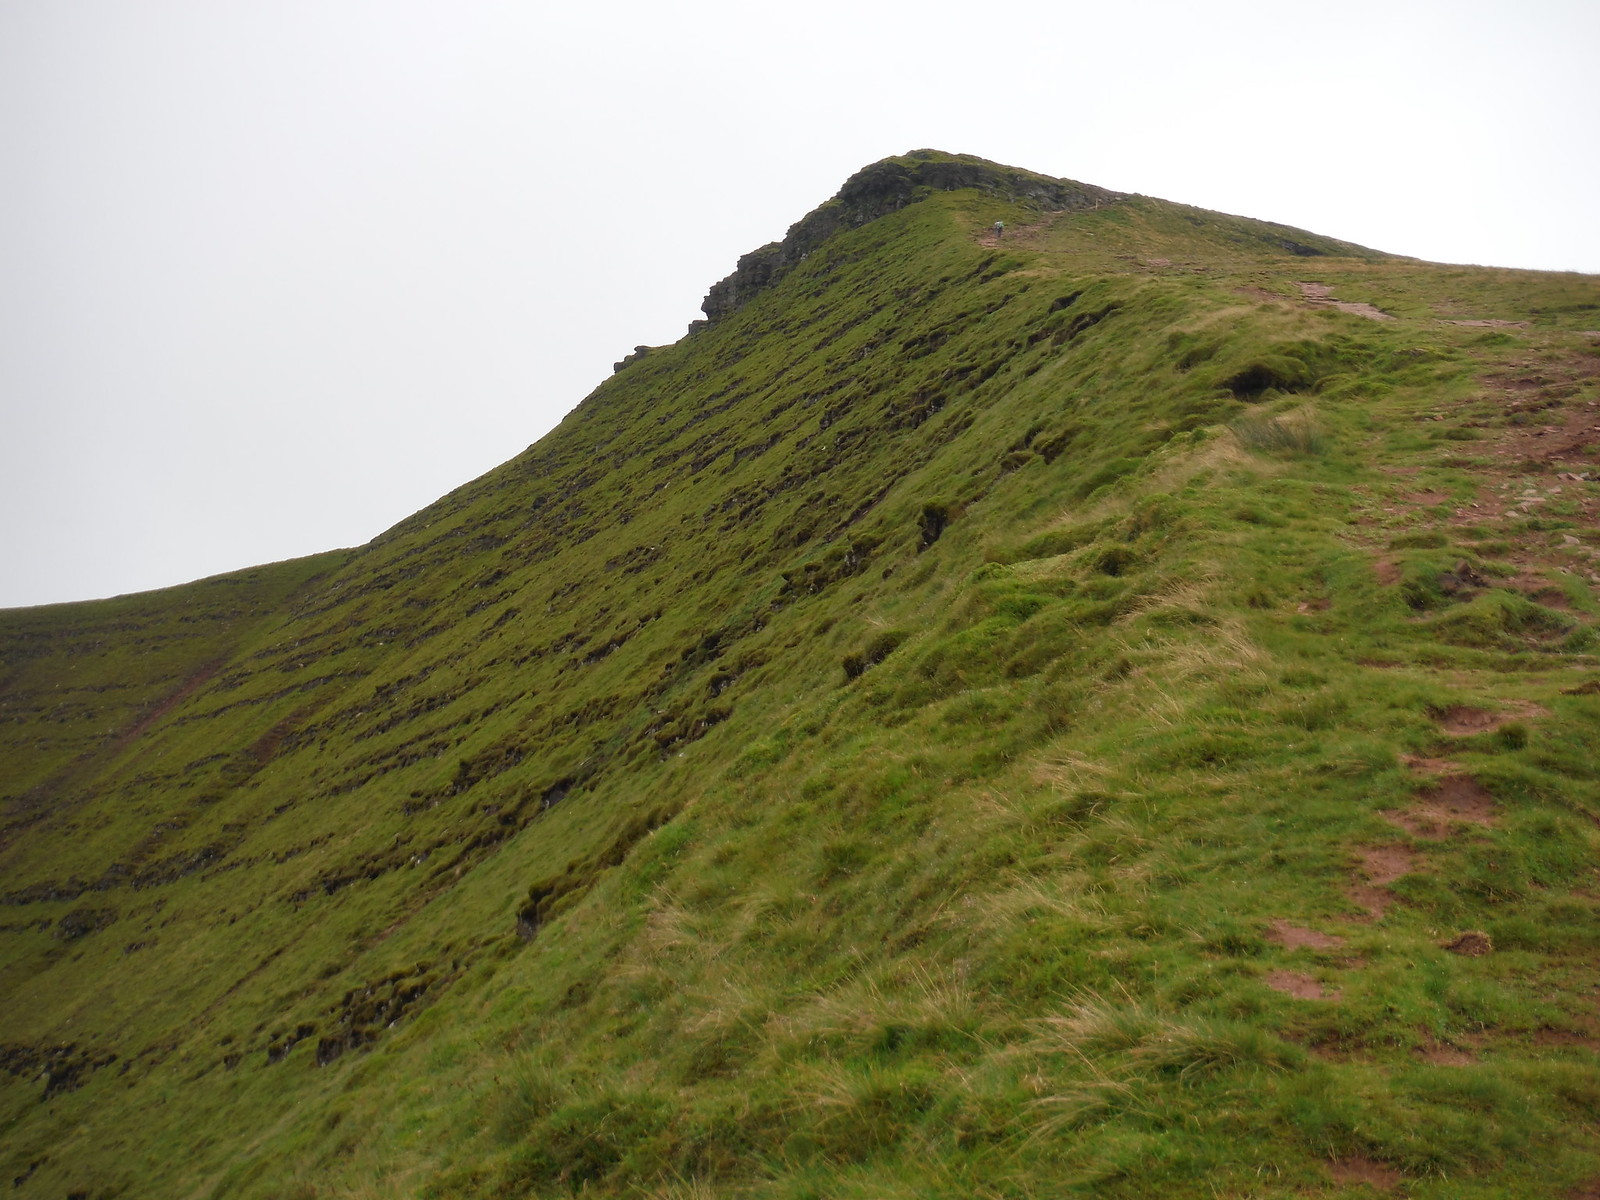 Craig Cwm Llwch (Ascent to Corn Du) SWC Walk 278 Breacon Beacons Horseshoe - Bannau Brycheiniog (Ascent from Storey Arms Car Park)